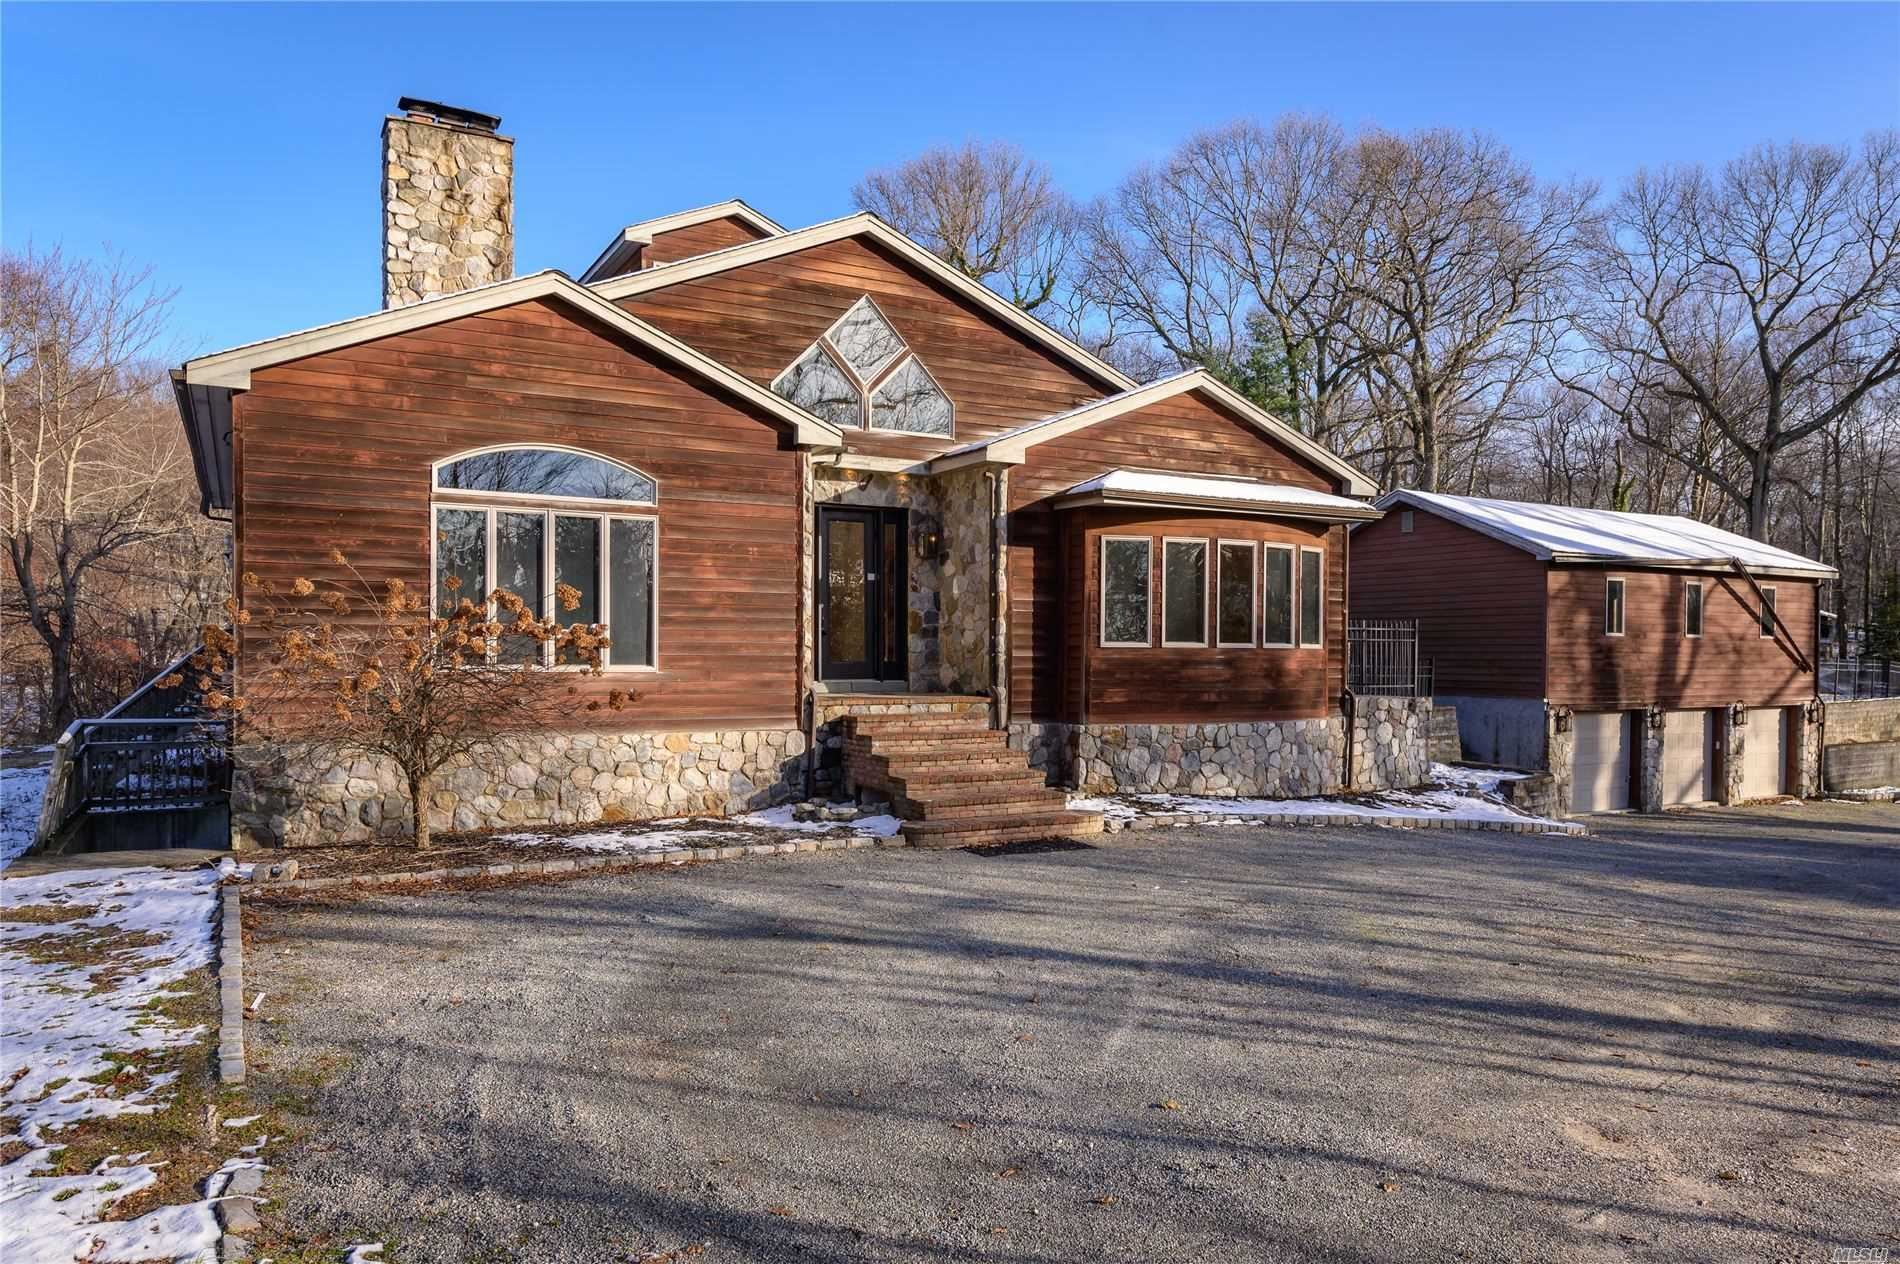 Photo of 78 Cove Neck Road, Oyster Bay, NY 11771 (MLS # 3212376)